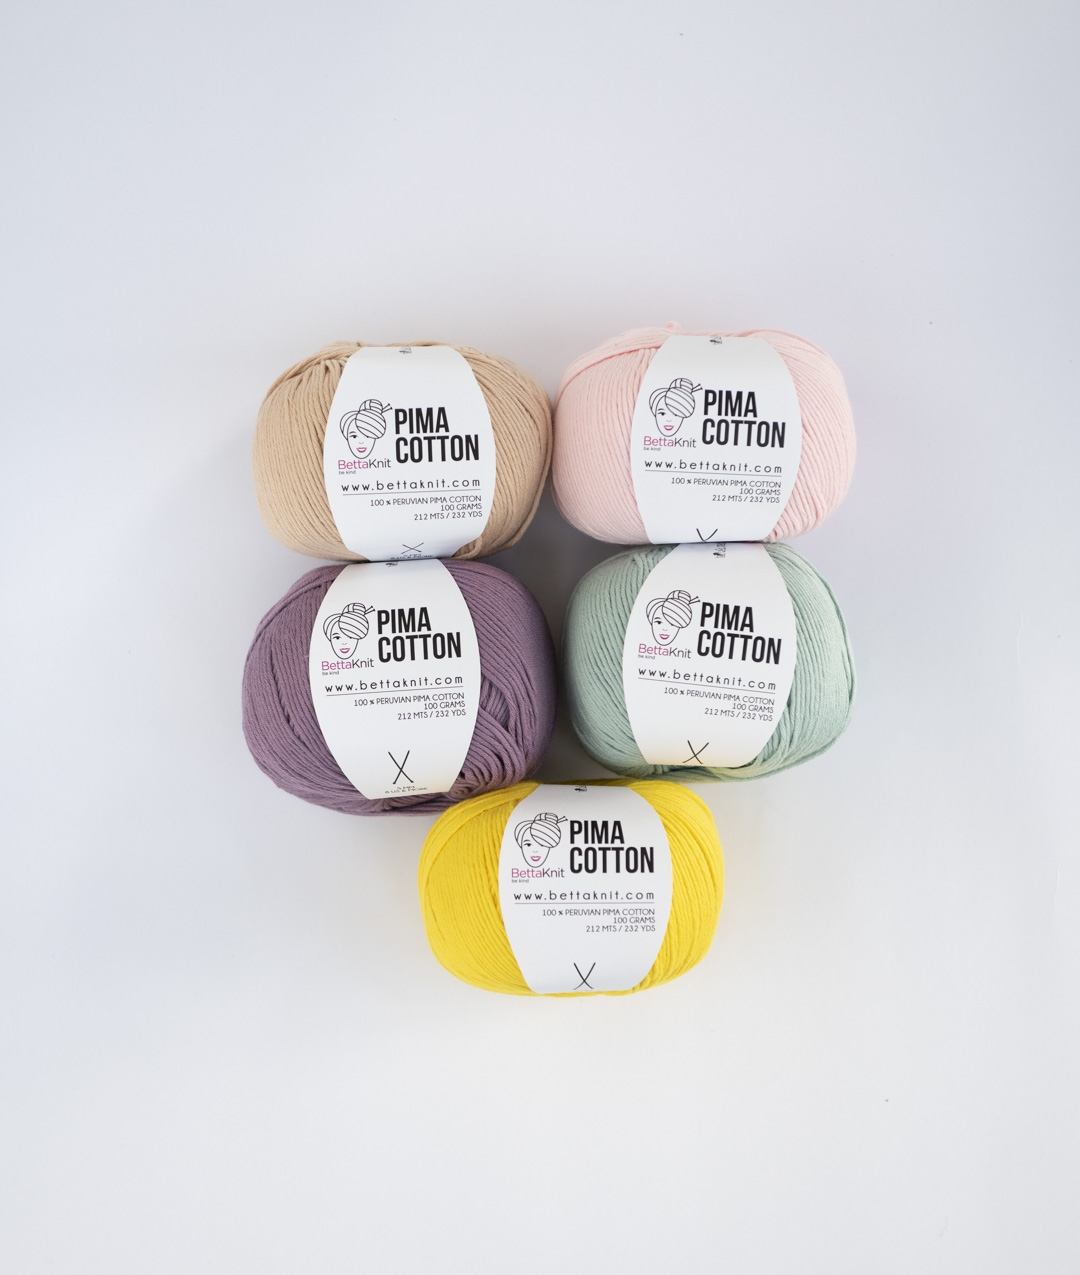 Pack of Yarn -  - Pima Cotton Pack - 5 balls  - 1